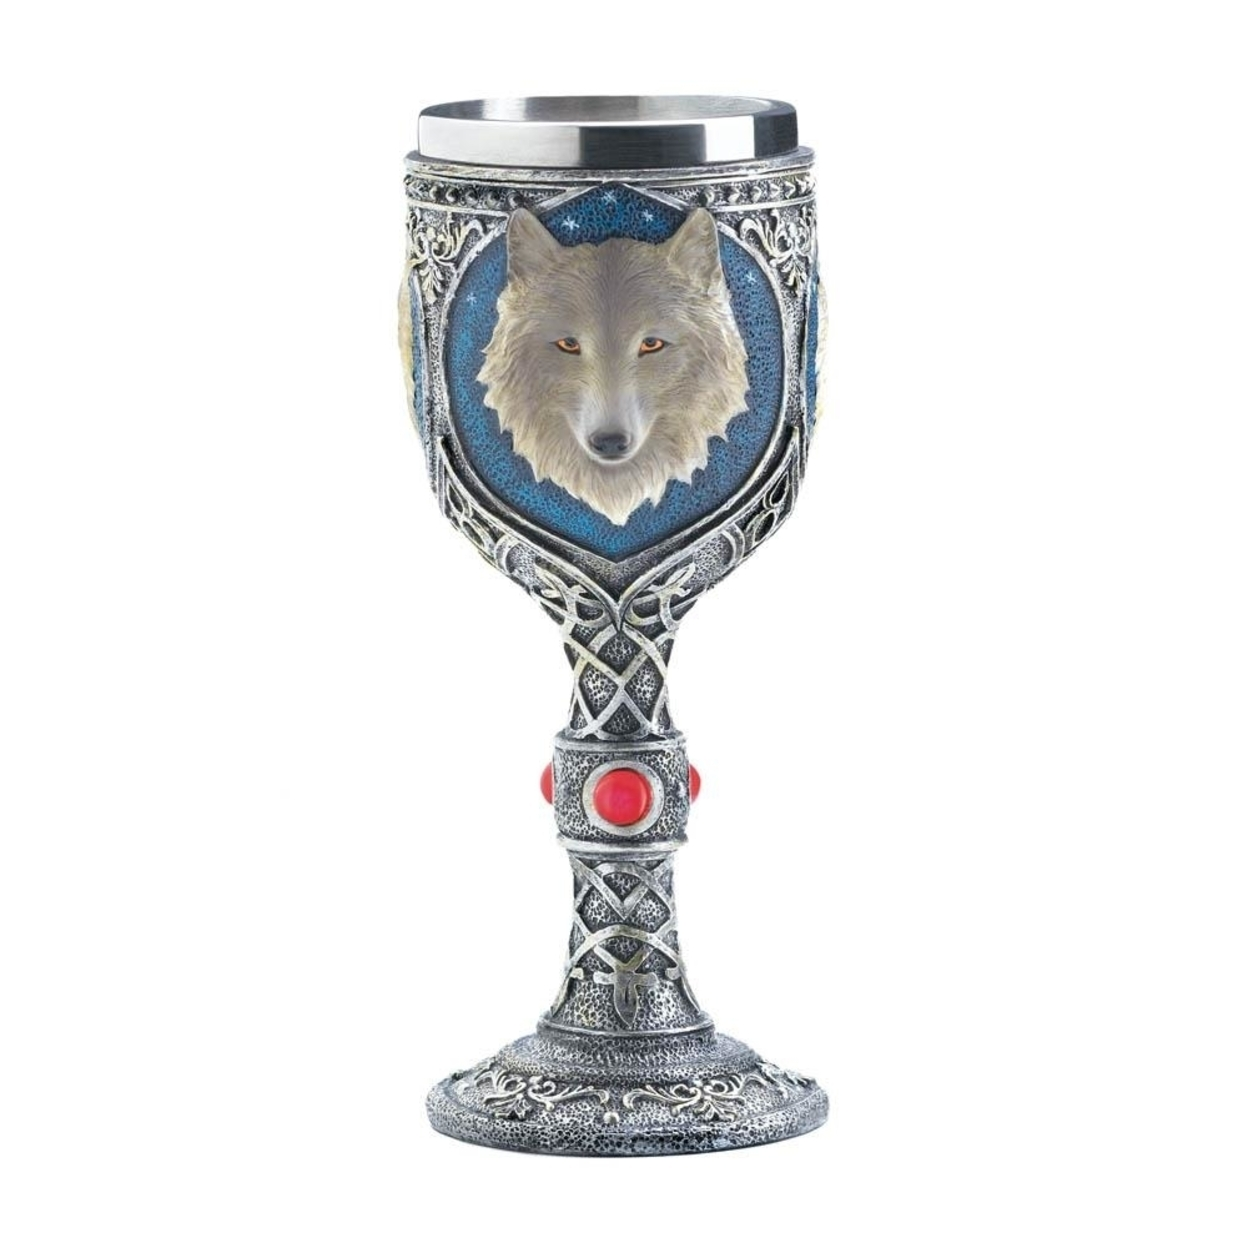 Timber Wolf Goblet 5a194f7ee2246142030fd7b7